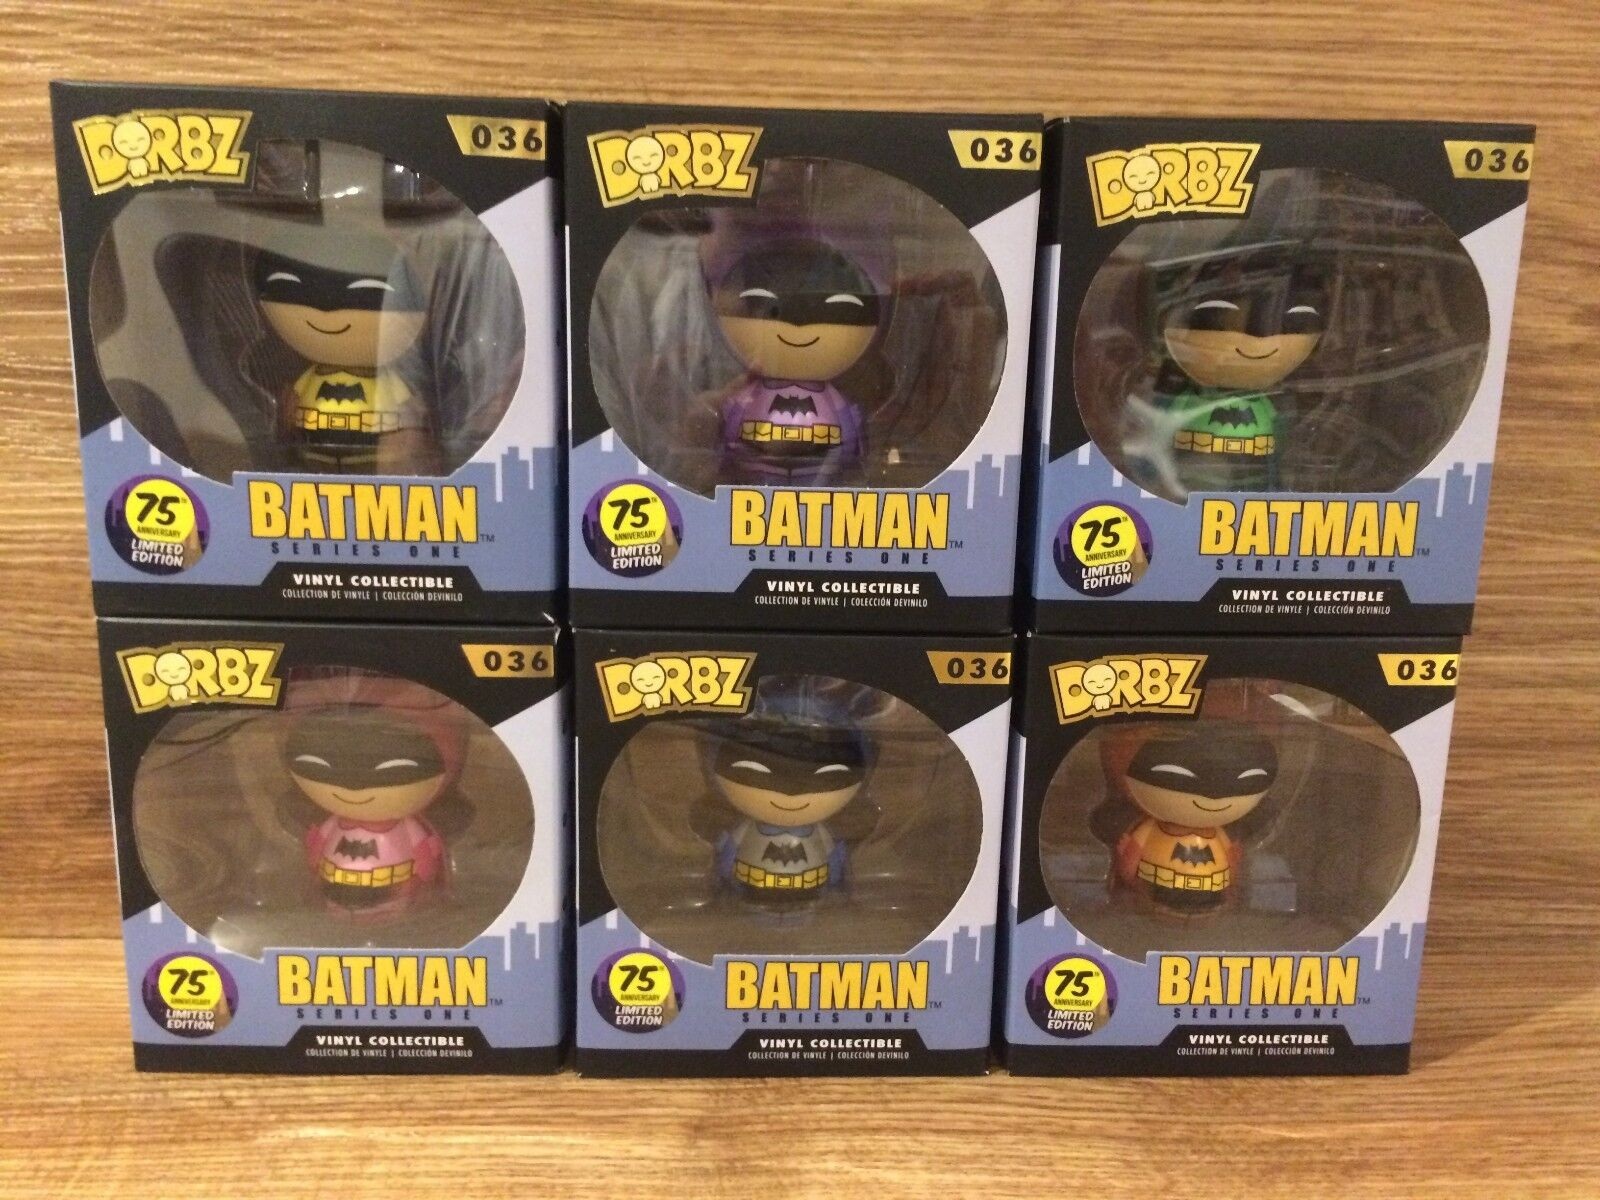 Funko Dorbz DC Batman Series One 036 Batman 75th Anniversary Limited Edition Set